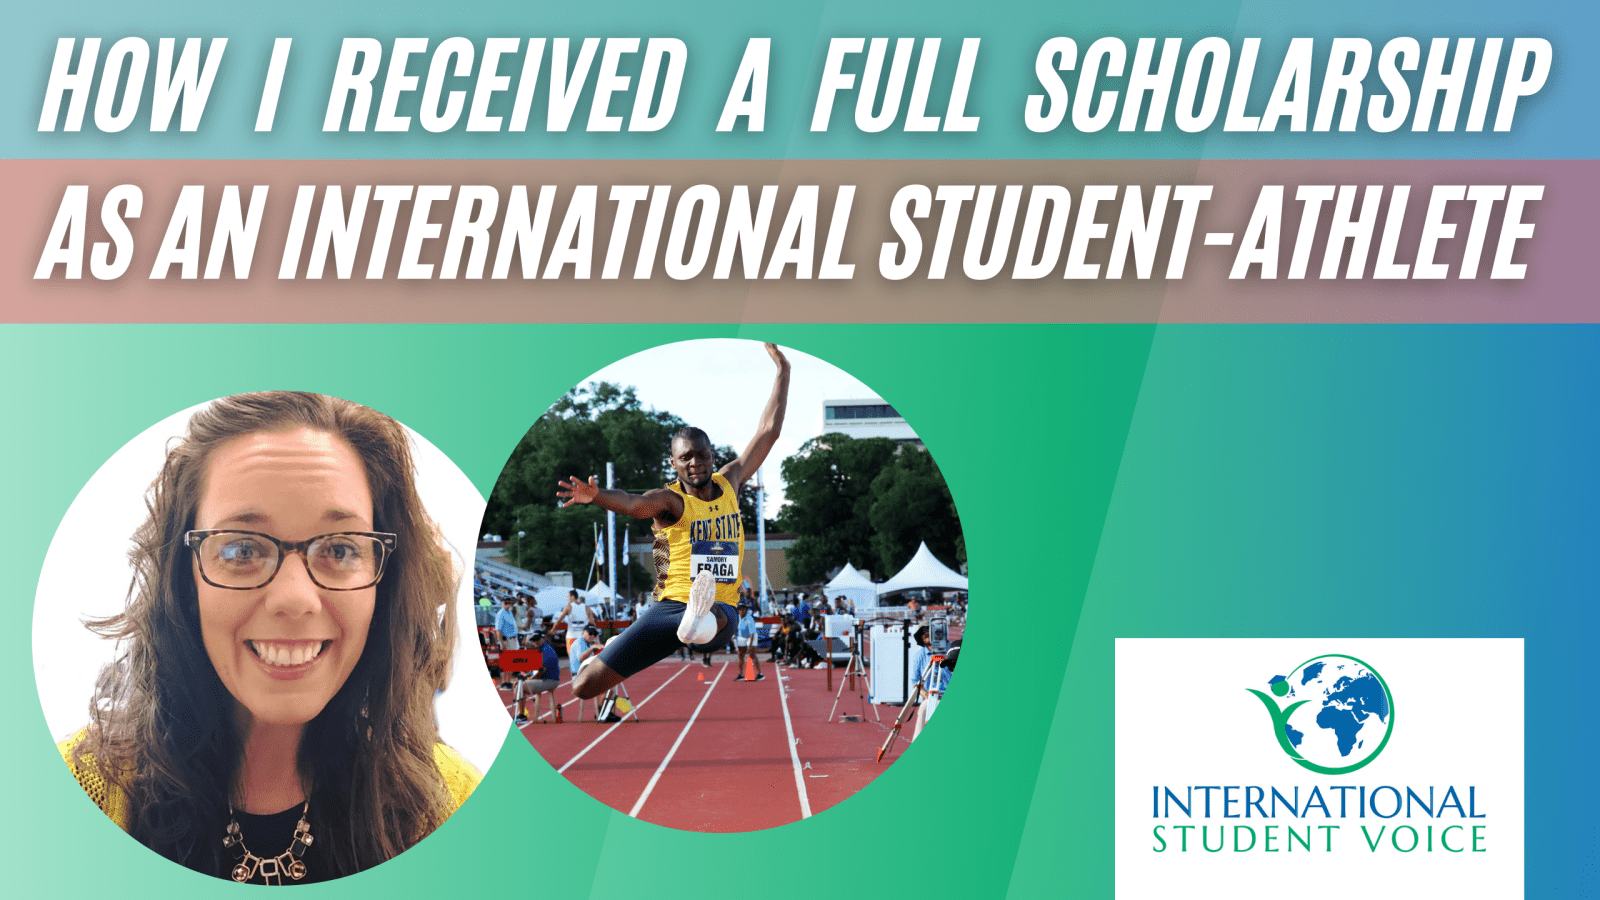 international student-athlete Samory Fraga